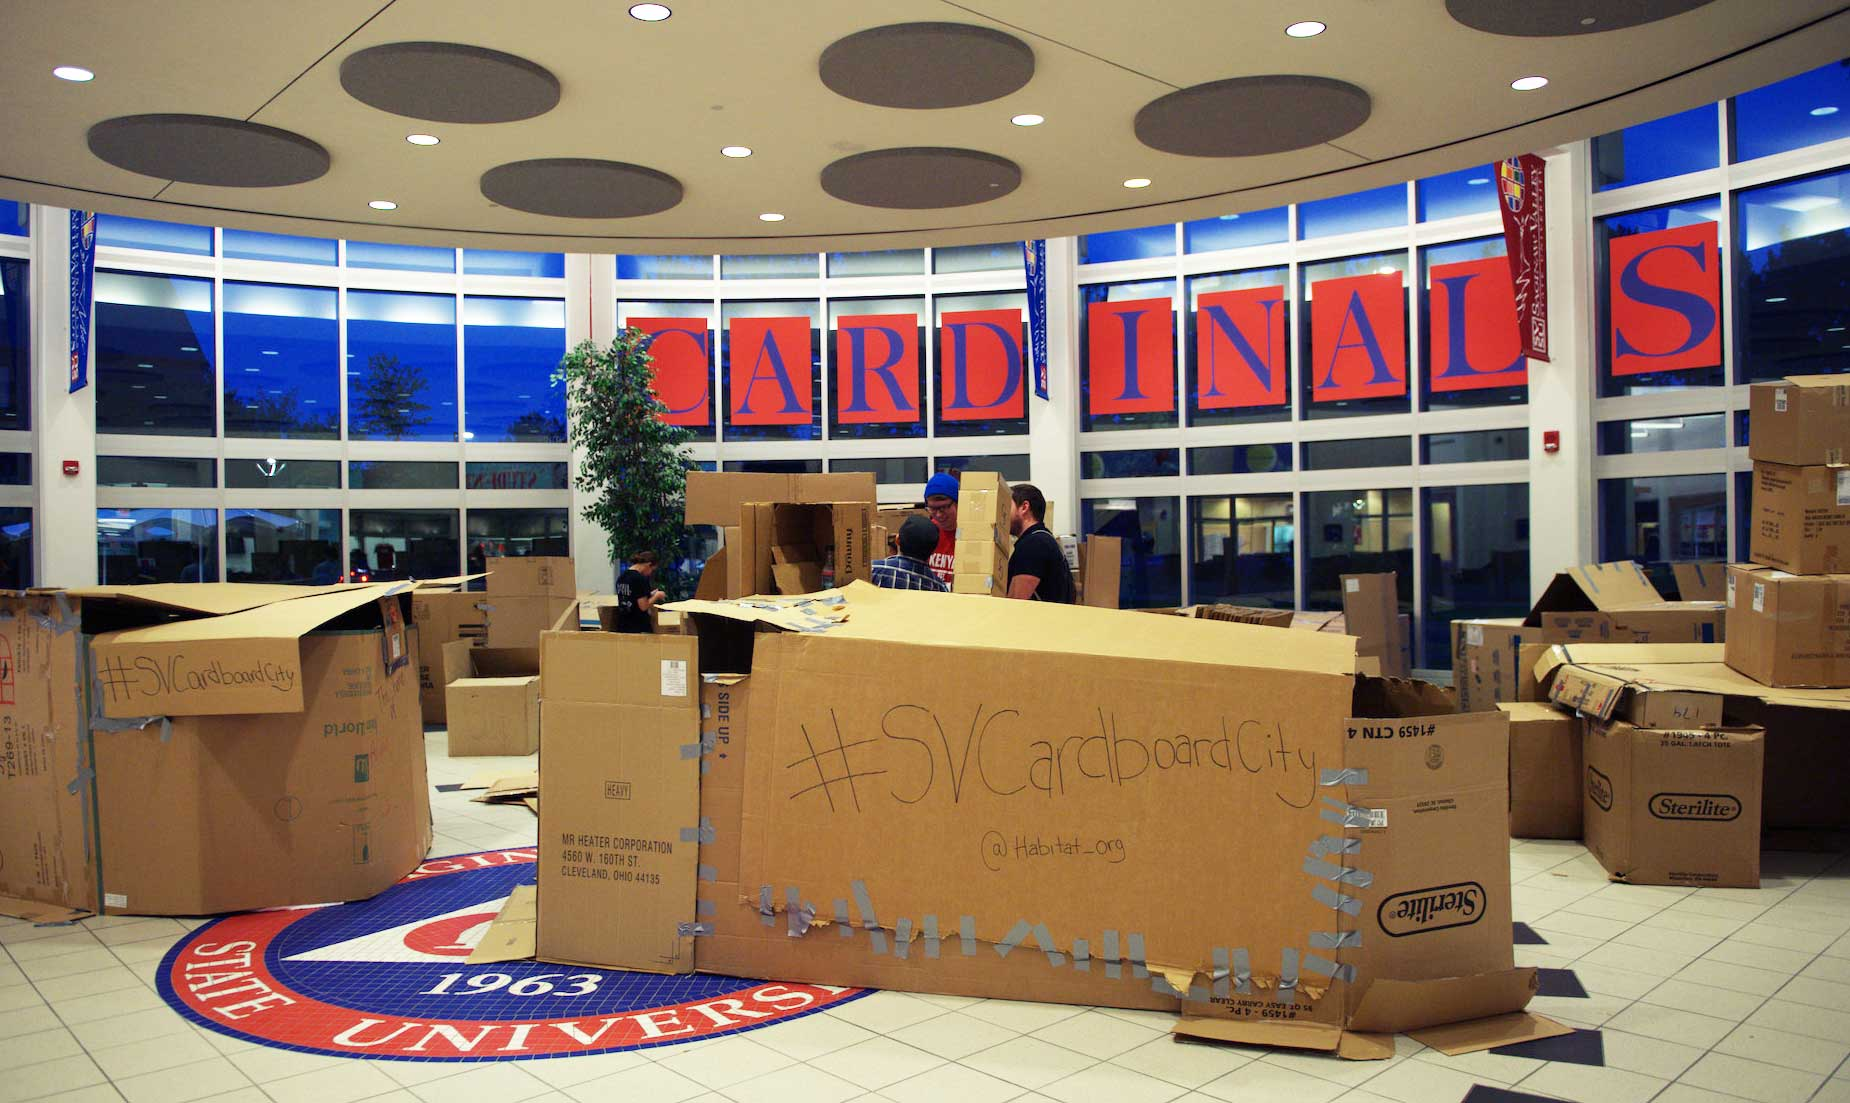 Cardboard City is an annual event where students make